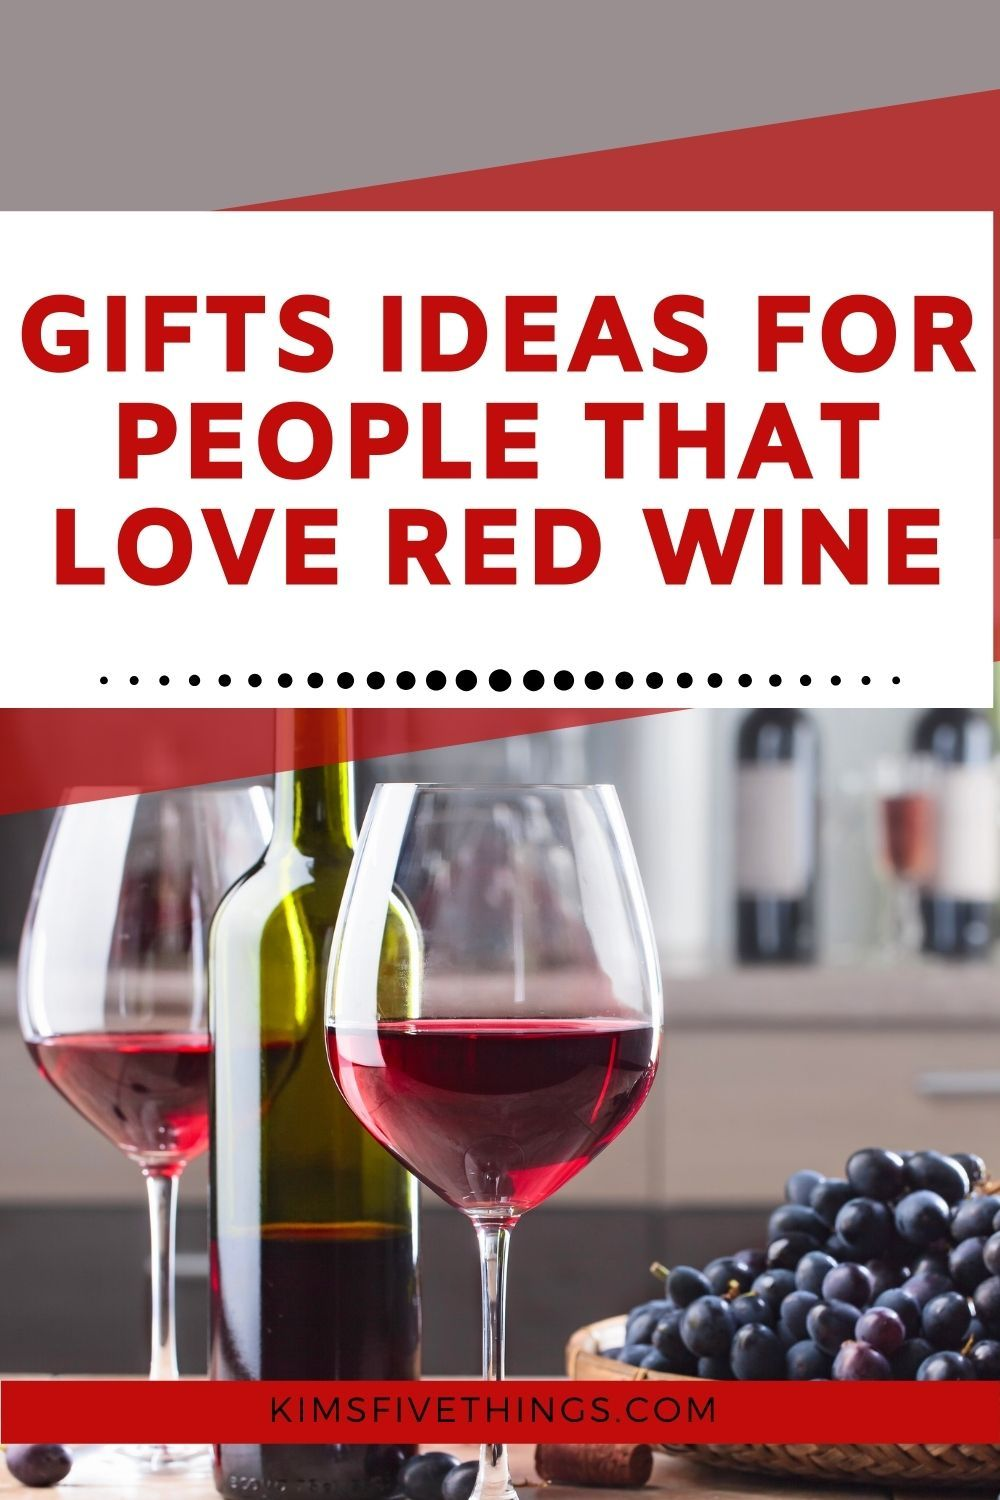 Gifts For Red Wine Lovers Wine Lovers Essentials Kims Home Ideas In 2020 Wine Lovers Red Wine Gifts For Wine Drinkers